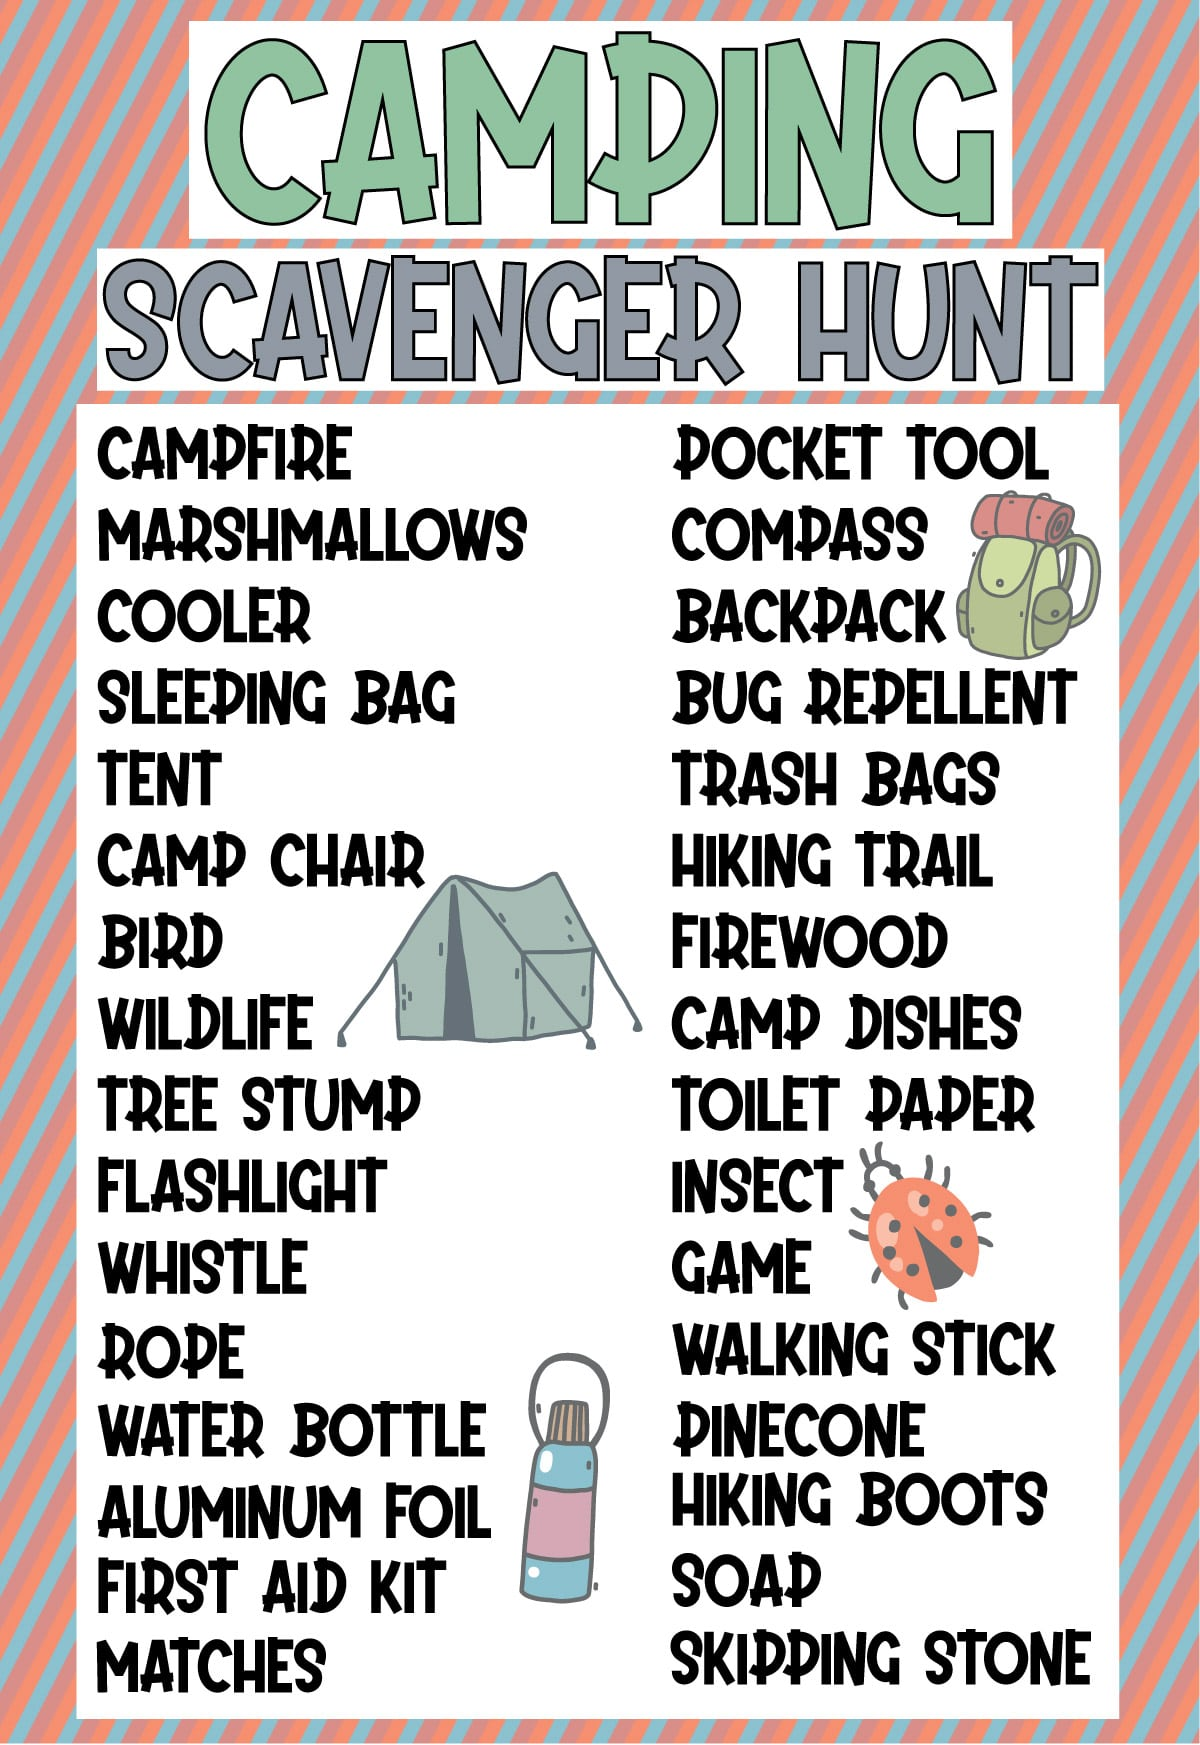 Camping scavenger hunt list with a diagonal striped background